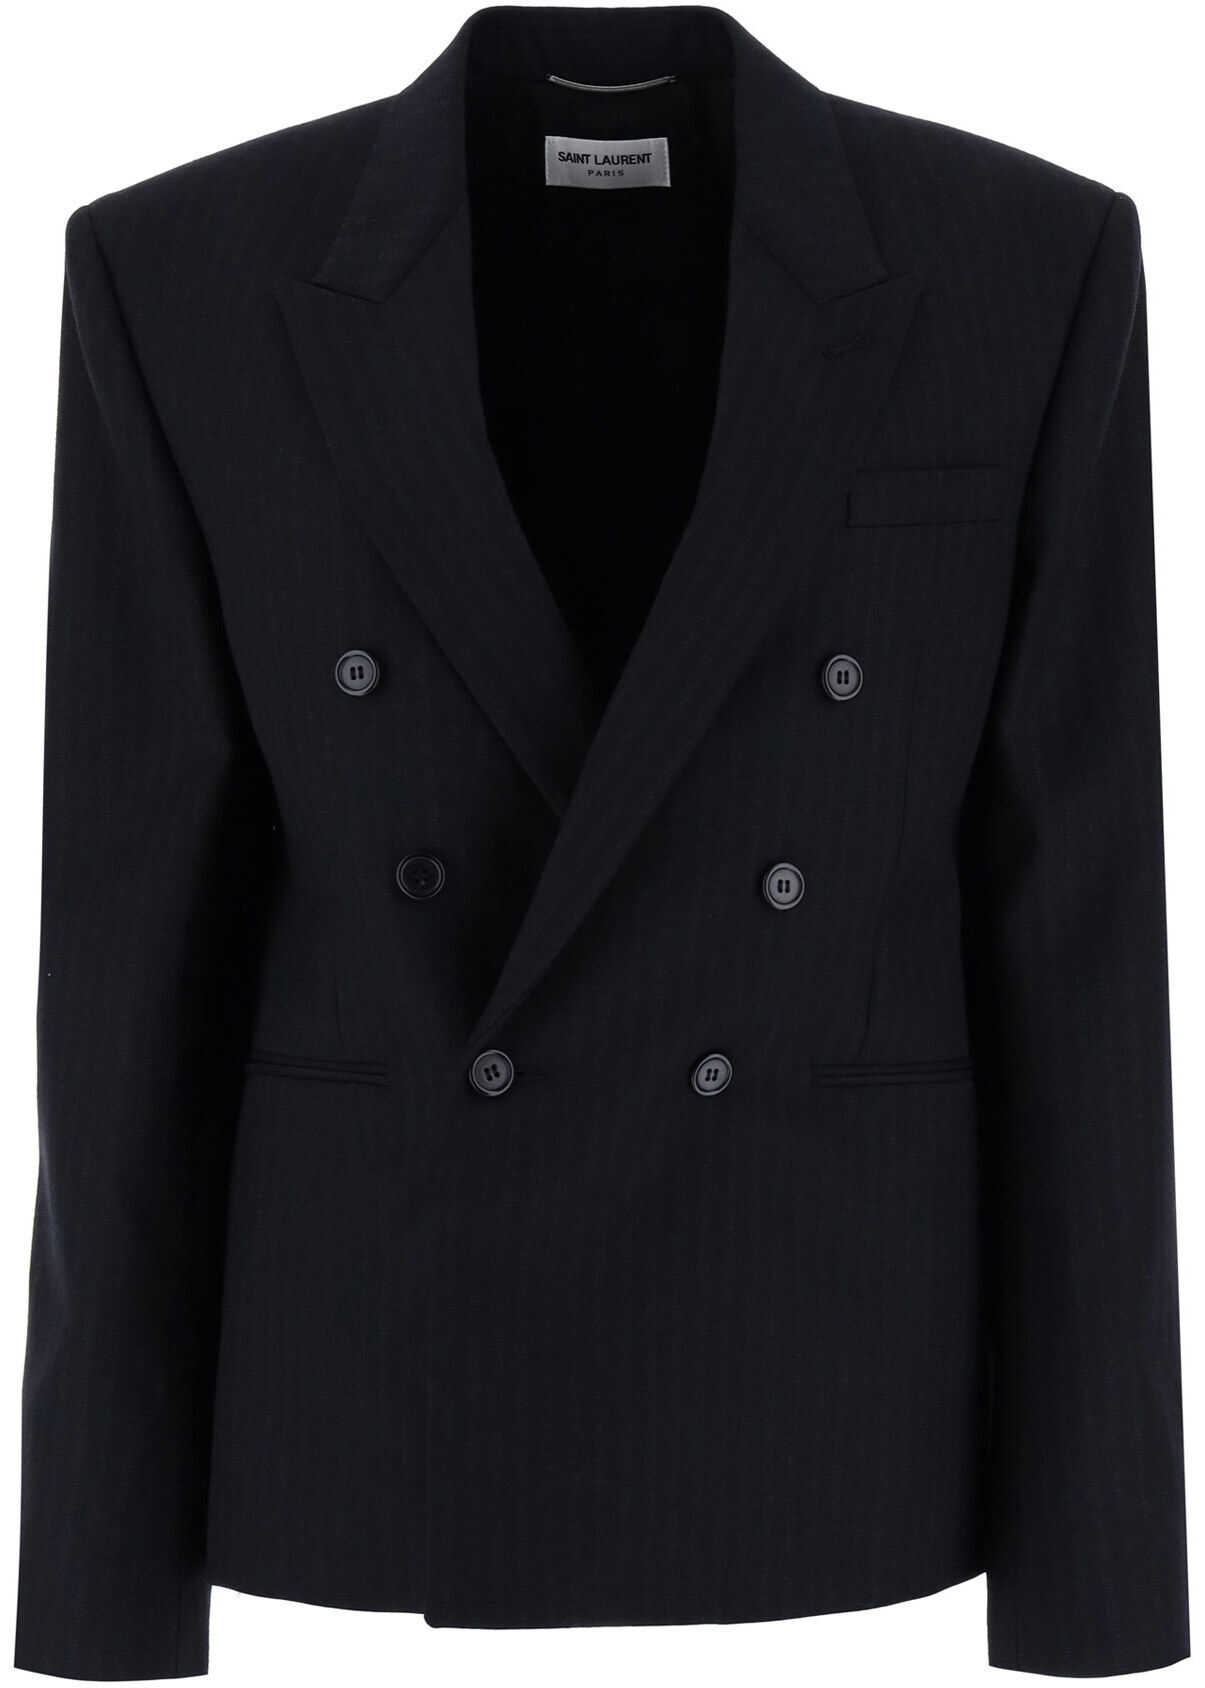 Saint Laurent Pinstripe Blazer NOIR ANTHRACITE imagine